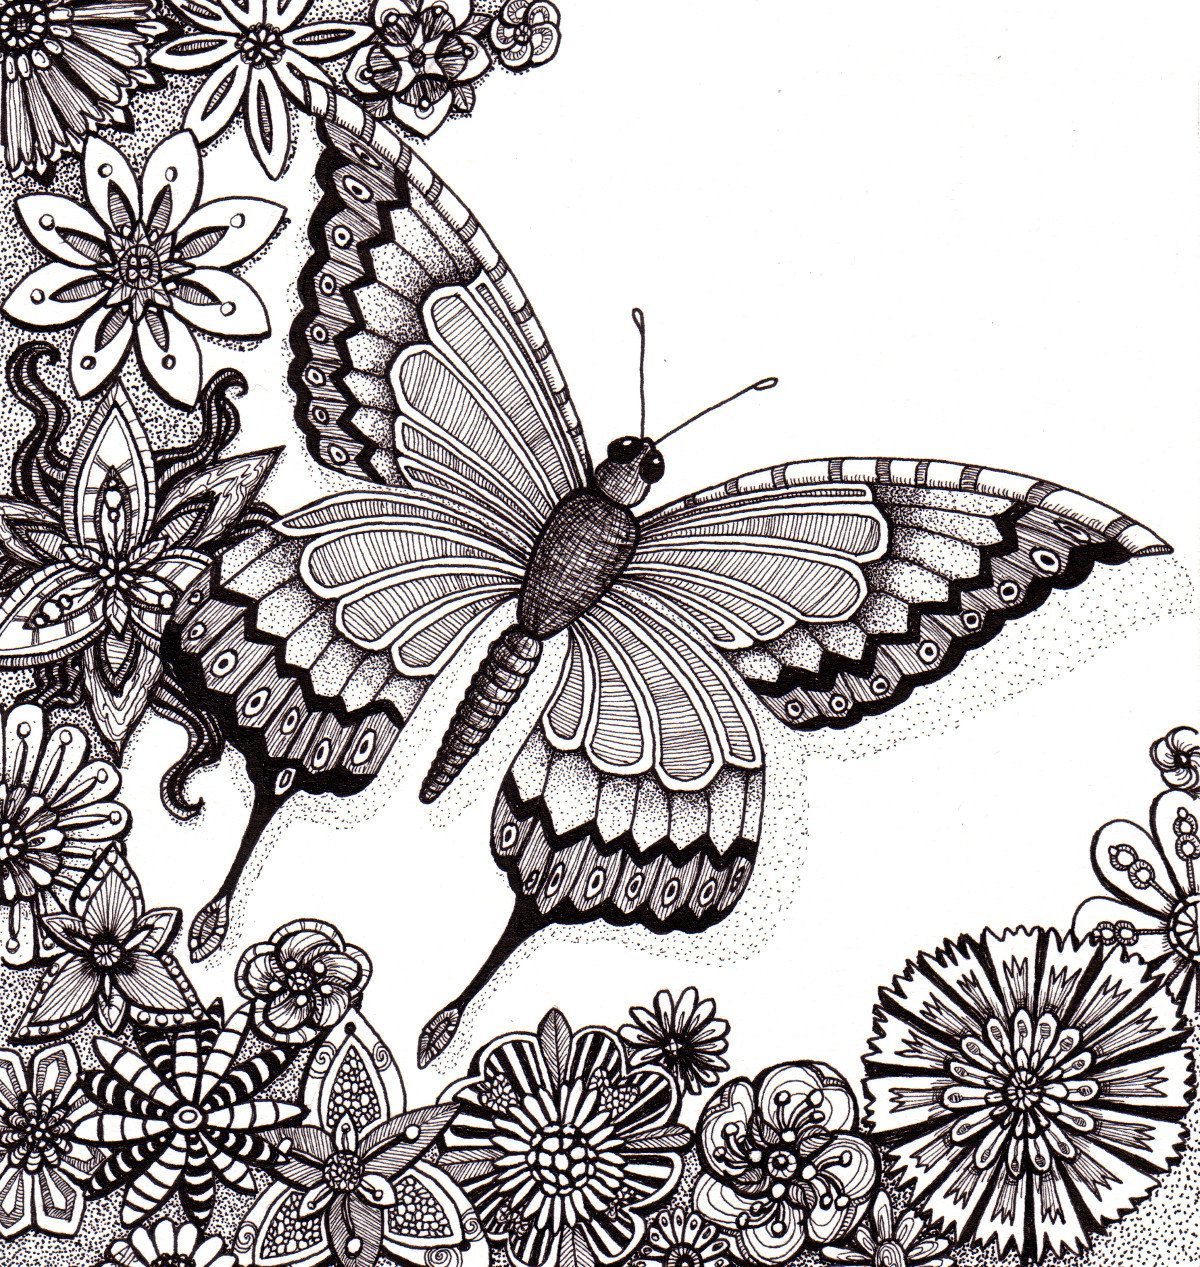 Flutter By Butterfly Beautiful And Original Whimsical Abstract Psychedelic Ink Drawing Illustration Butterfly Flowers Zentangle Art Zentangle Drawings Butterfly Coloring Page [ 1267 x 1200 Pixel ]